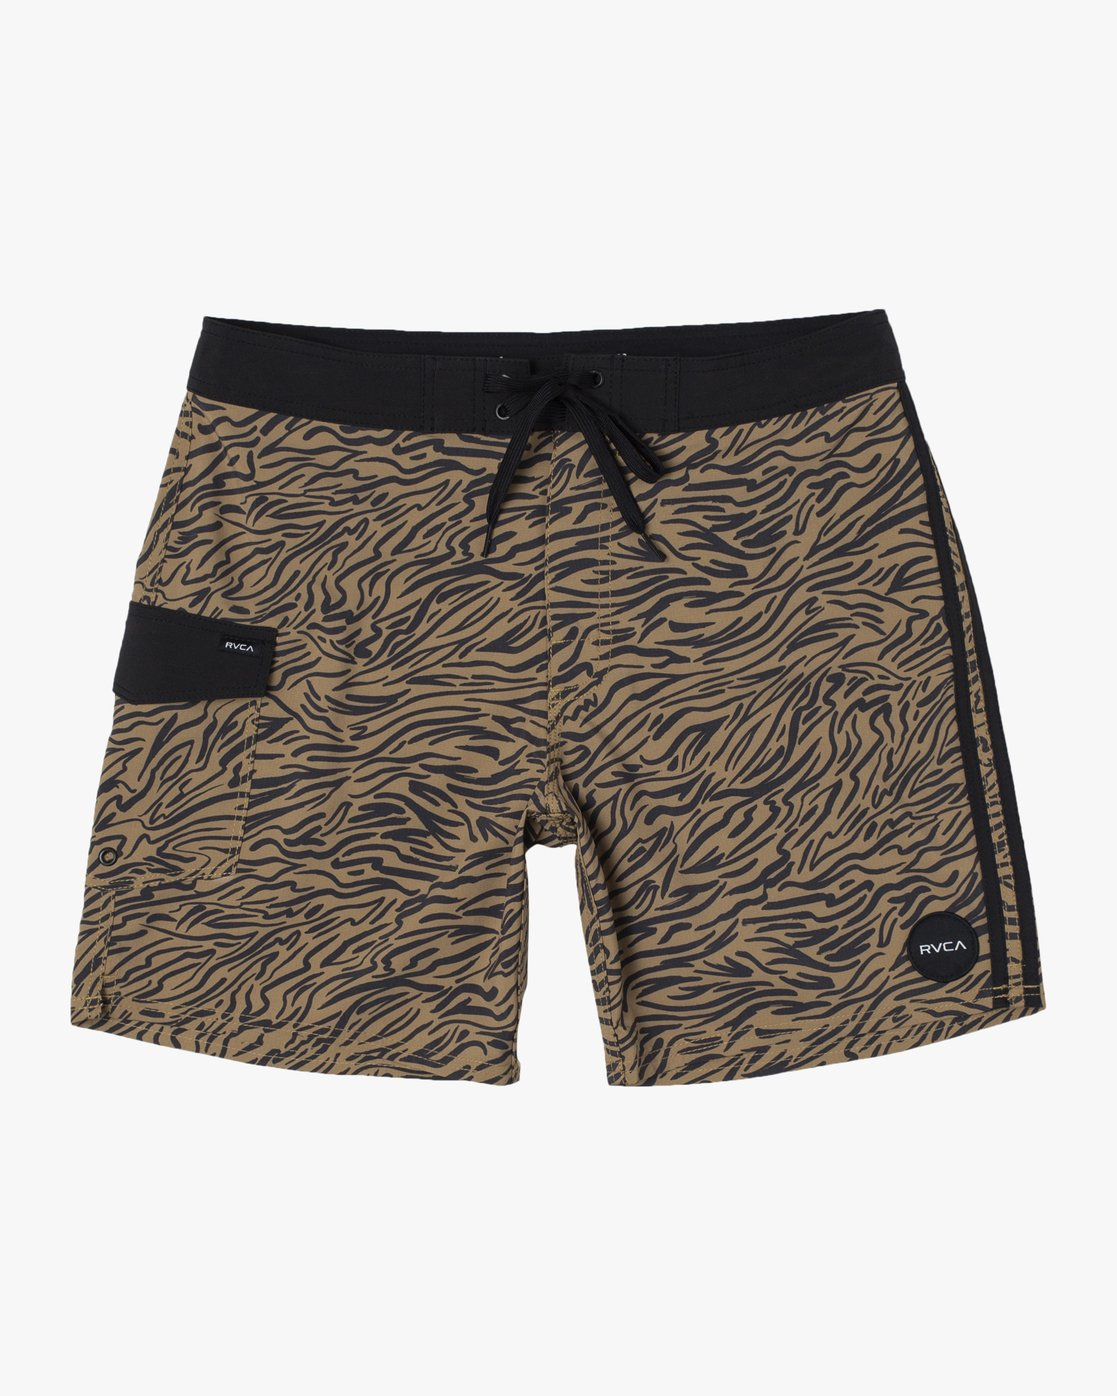 14 RESTLESS TRUNK White M10625RT RVCA